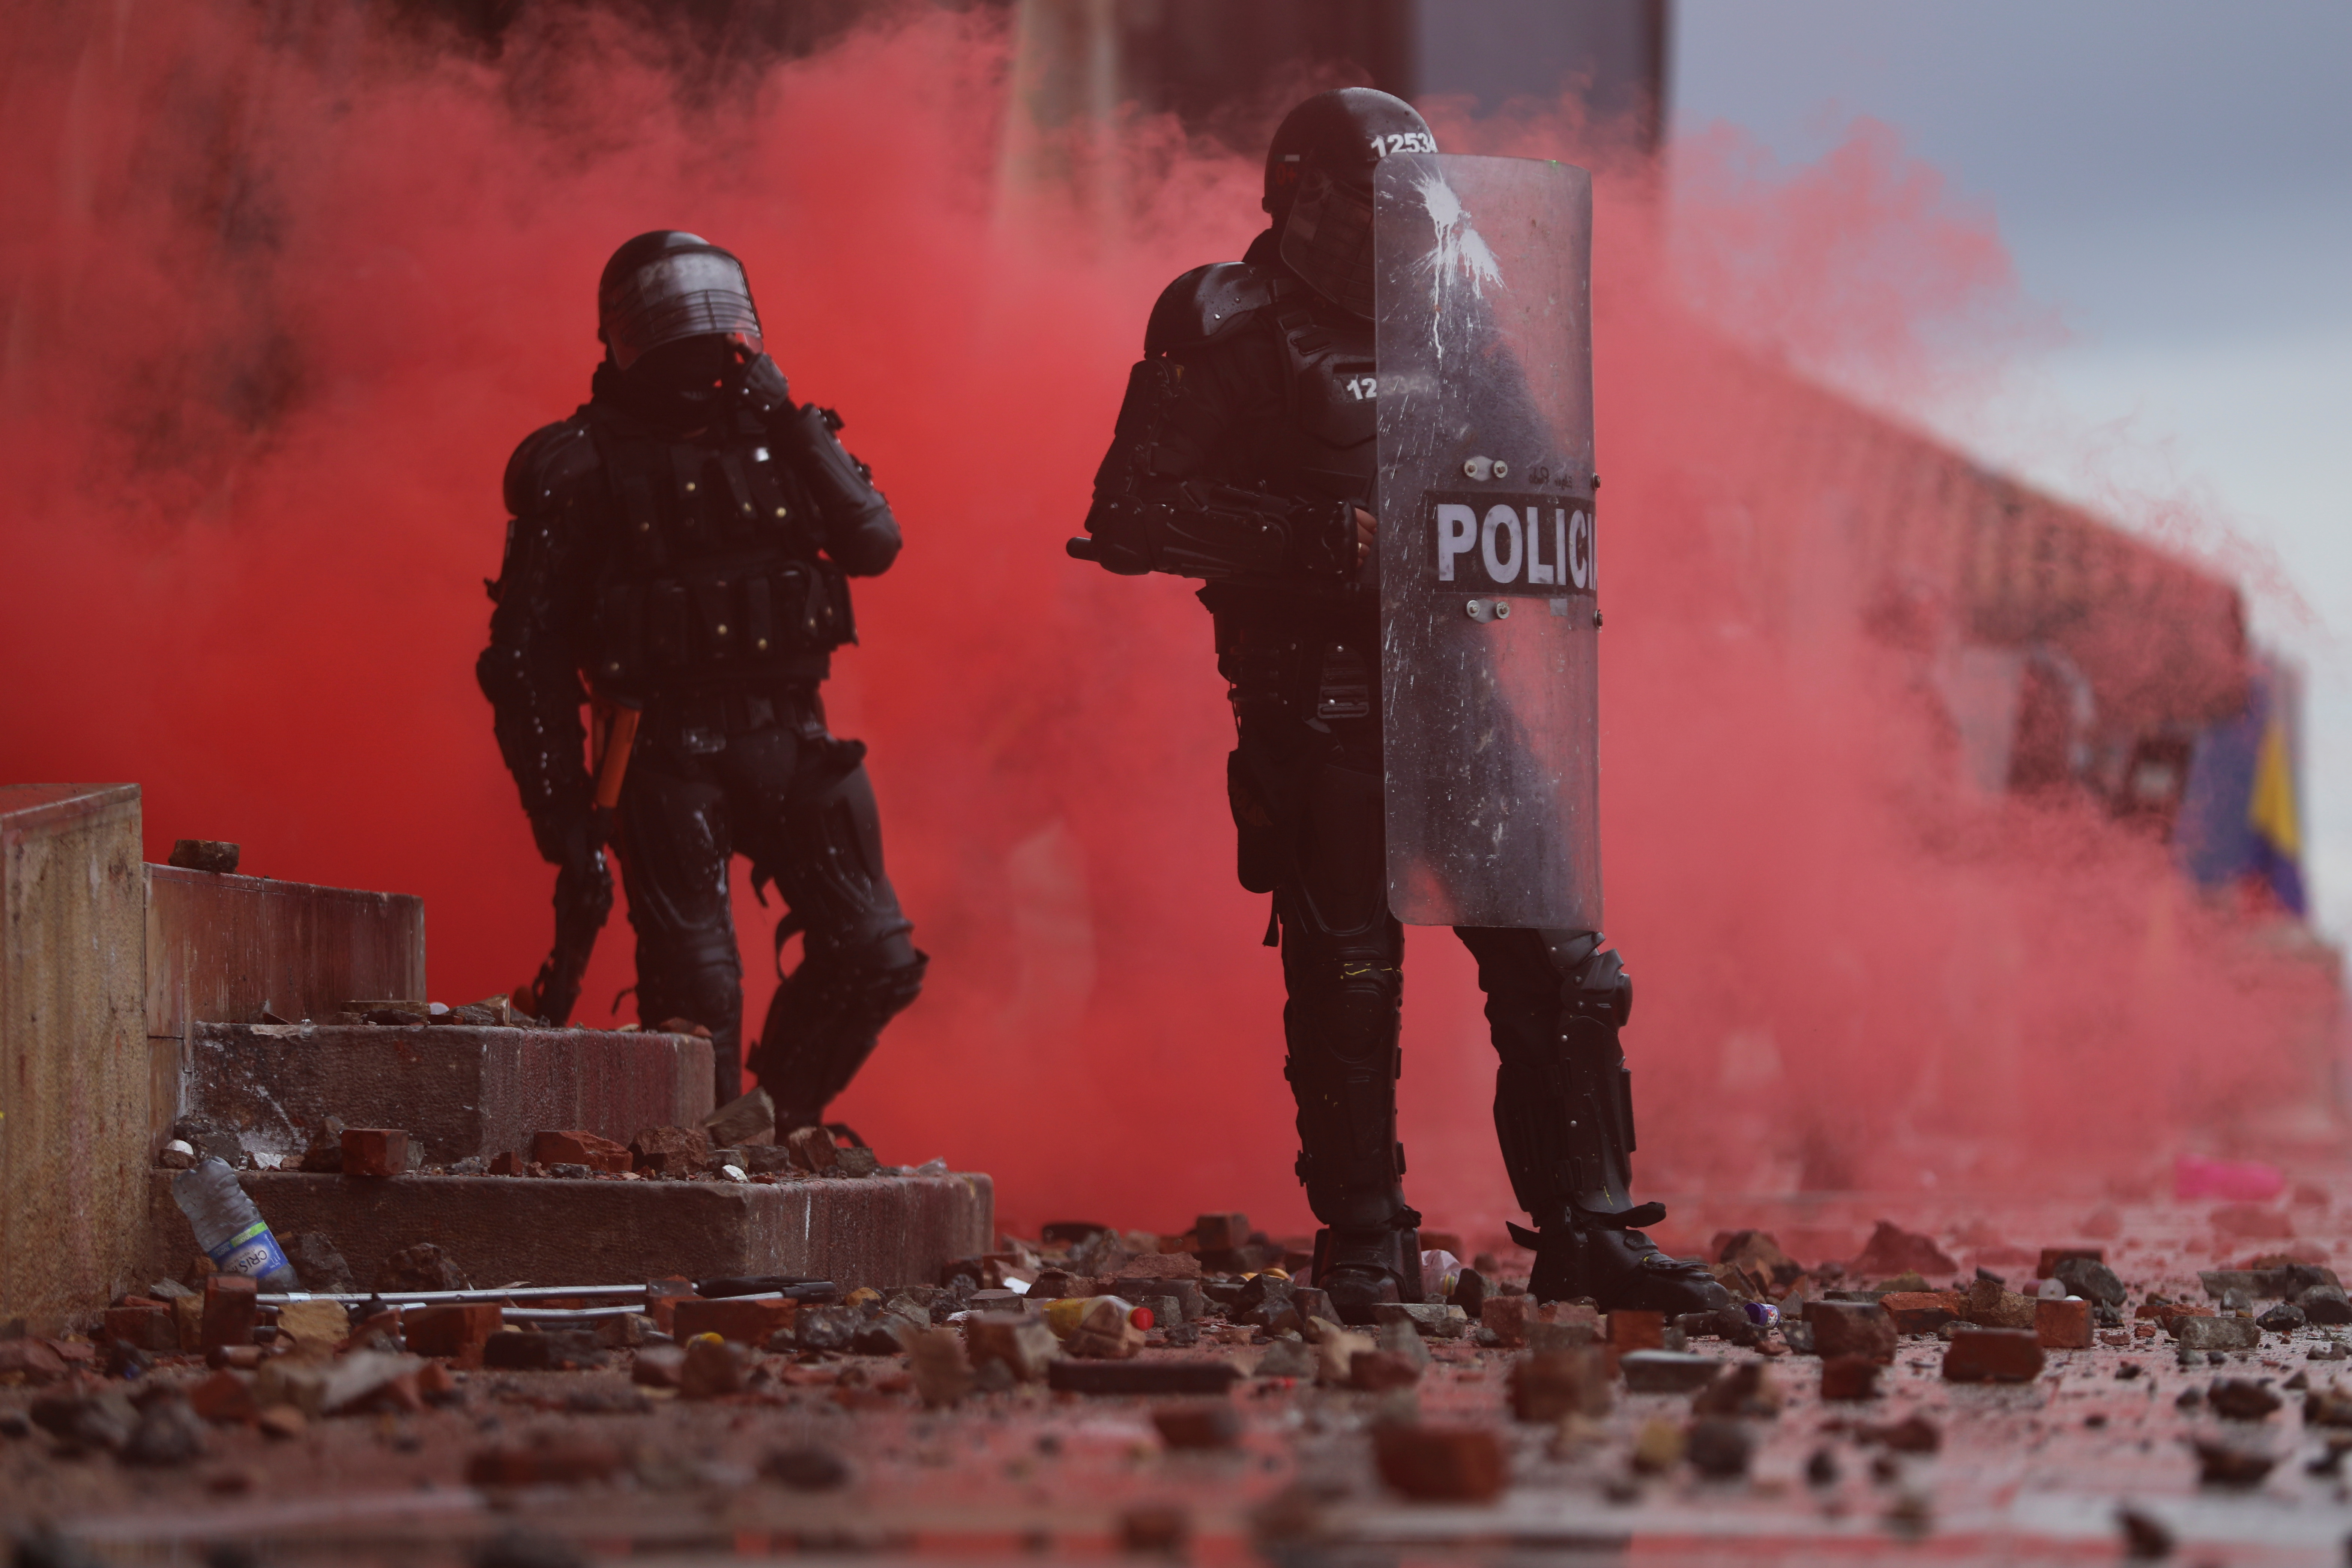 Police officers are seen during a protest against poverty and police violence in Bogota, Colombia, May 5, 2021. REUTERS/Luisa Gonzalez